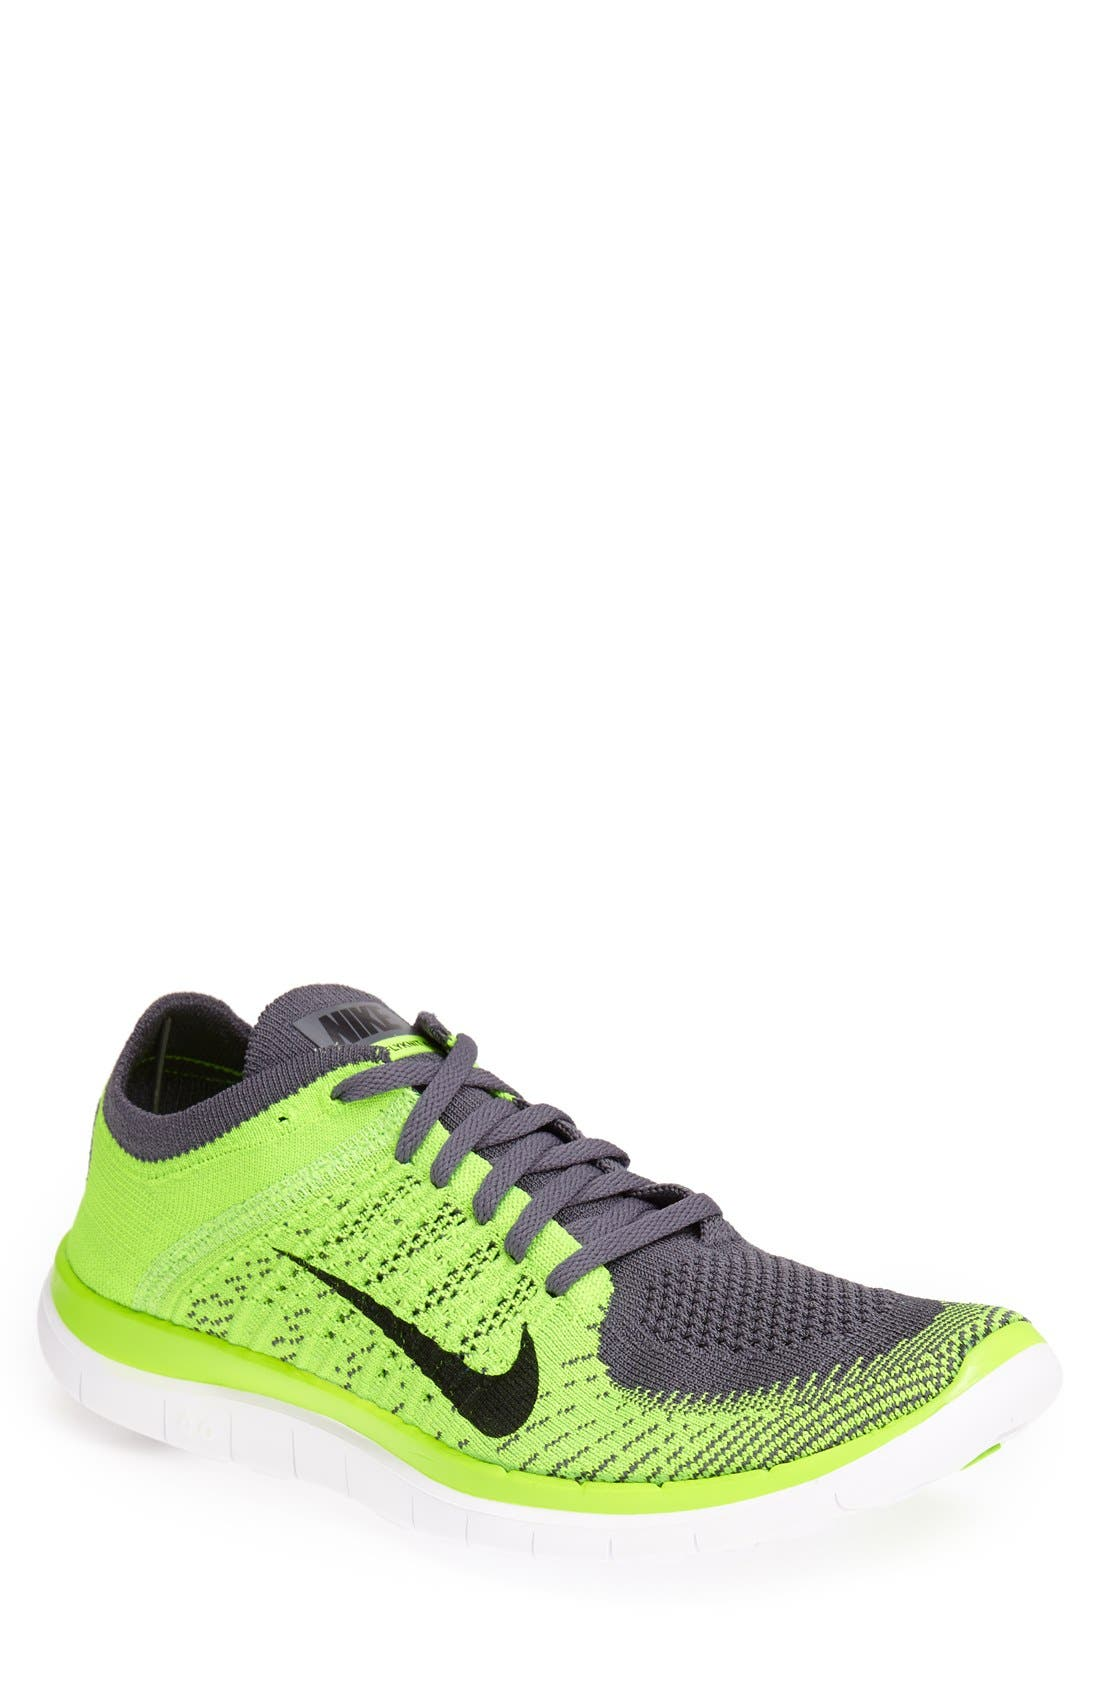 Main Image - Nike 'Free 4.0 Flyknit' Running Shoe (Men)